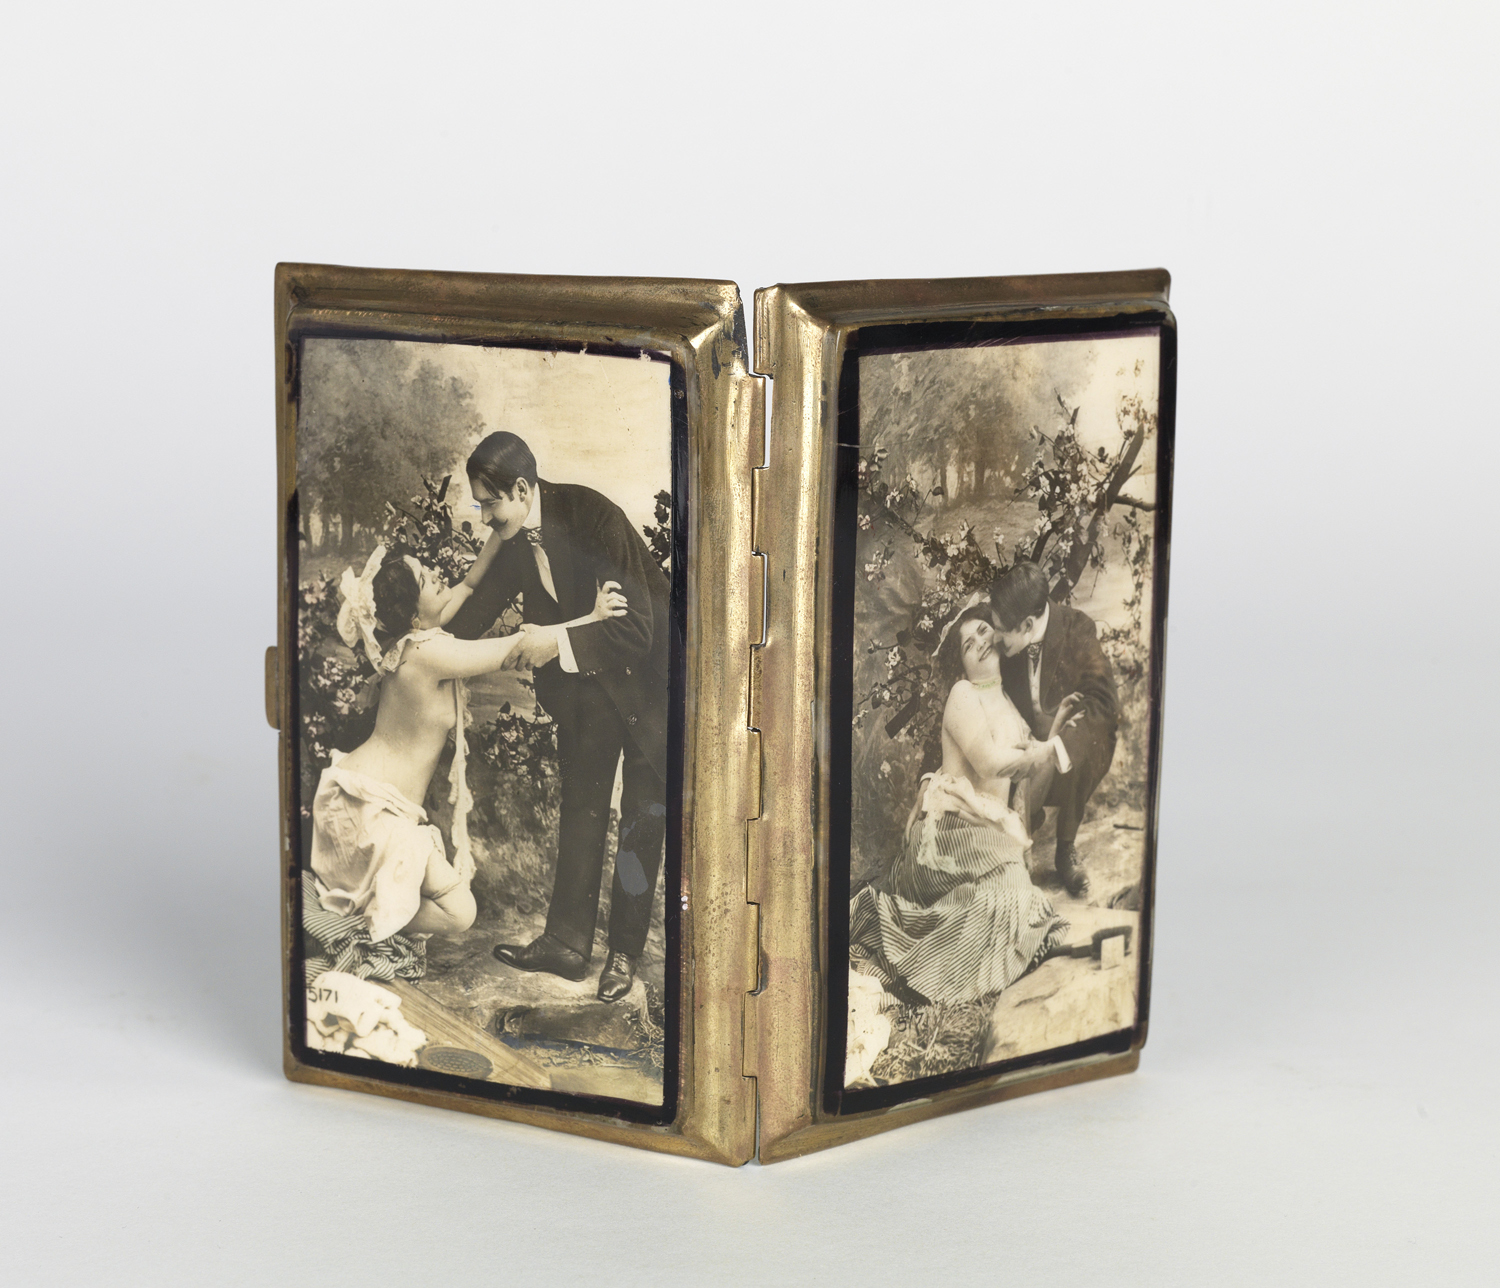 French cigarette case with images on celluloid of an amorous couple.  1900s